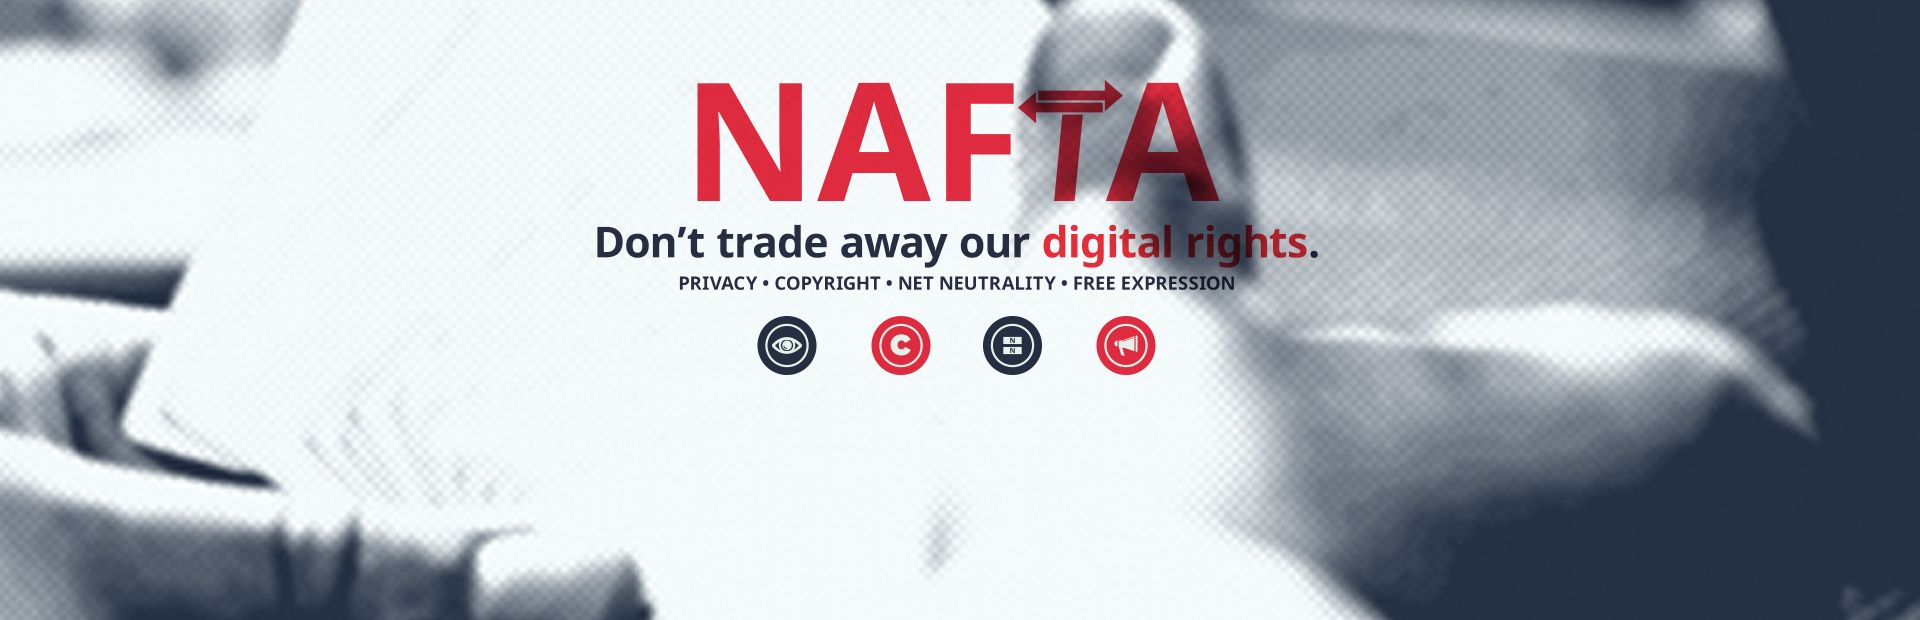 NAFTA: Don't Trade Away Our Digital Rights